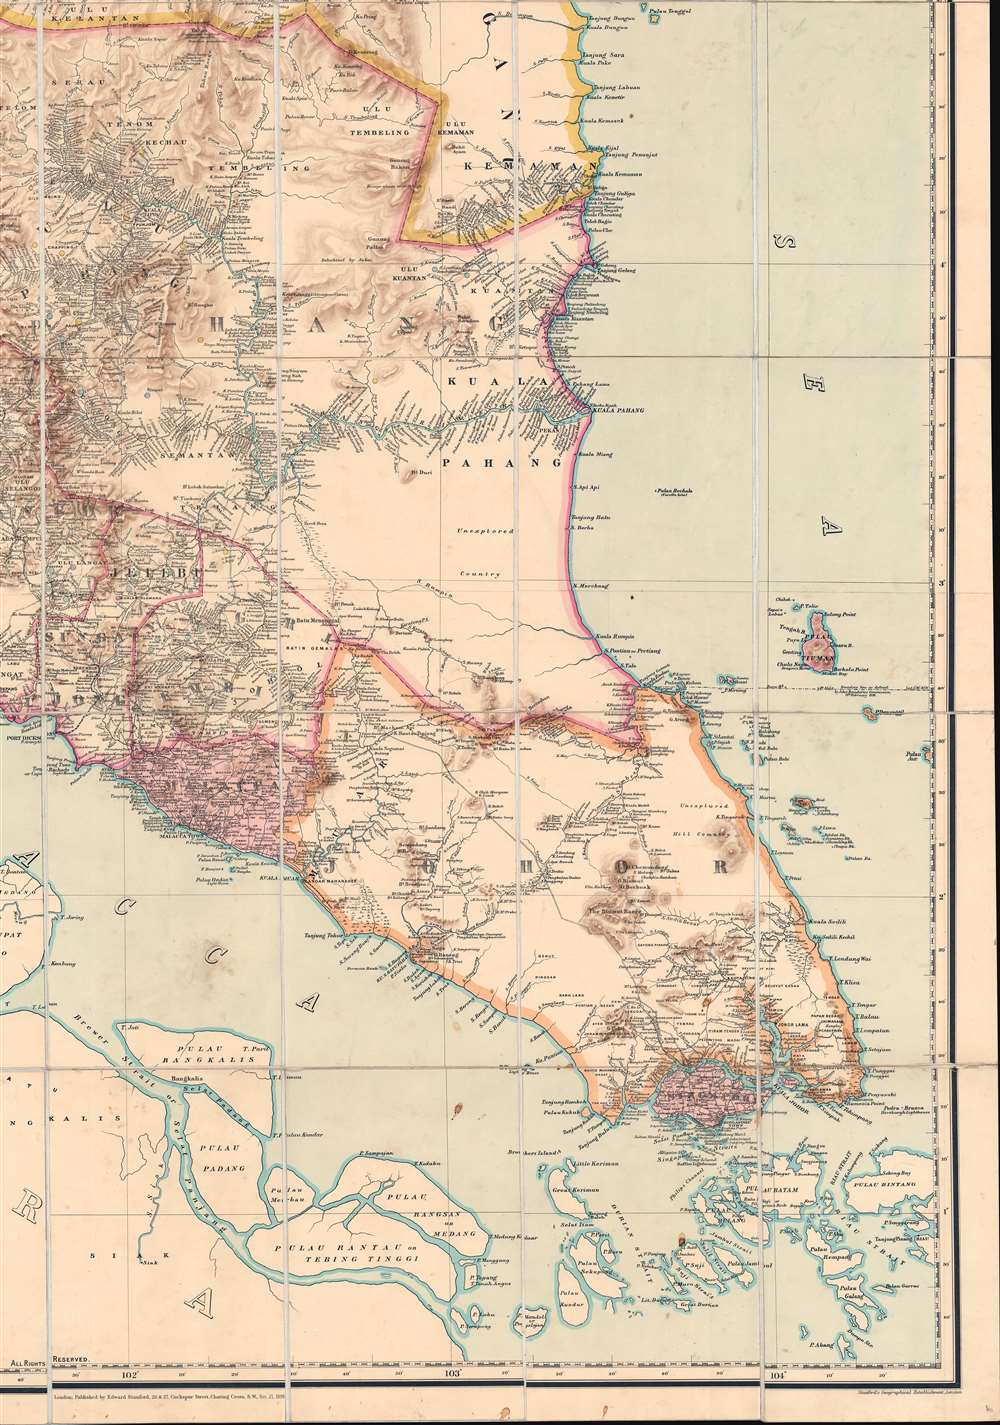 A Map of the Malay Peninsula Compiled by and Published for The Straits Branch of the Royal Asiatic Society Singapore. - Alternate View 5